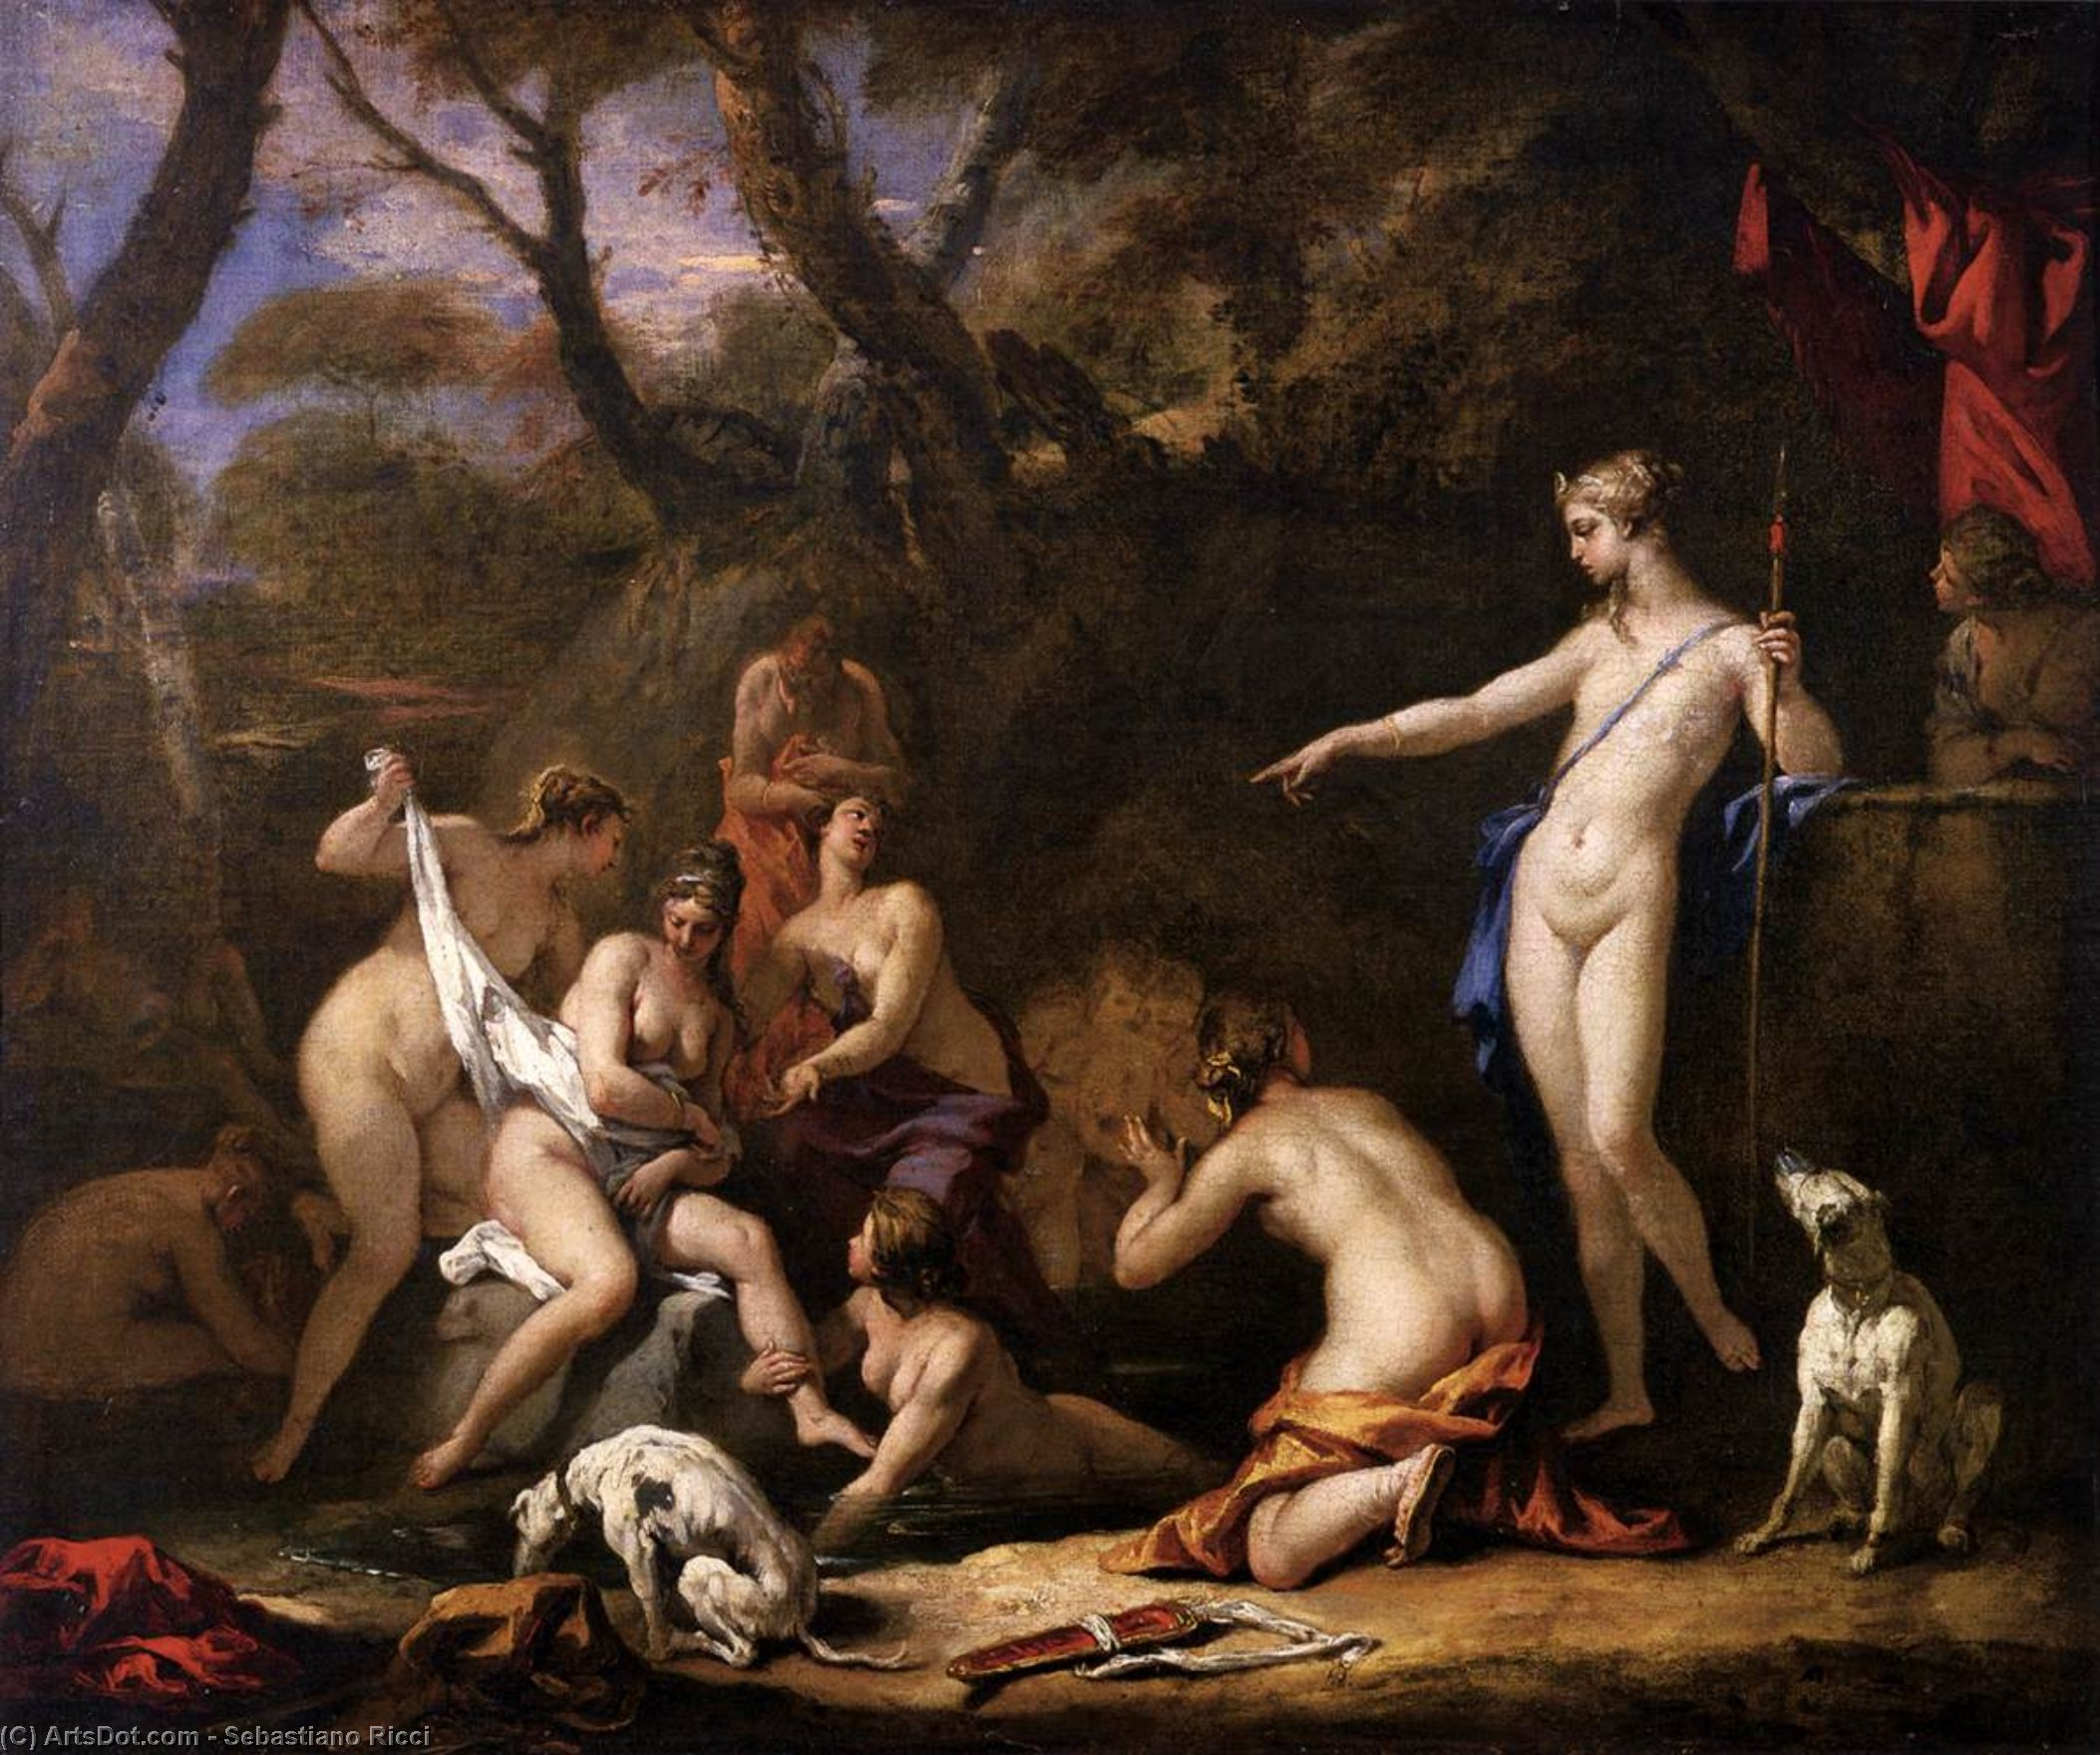 Wikioo.org - The Encyclopedia of Fine Arts - Painting, Artwork by Sebastiano Ricci - Diana and Callisto